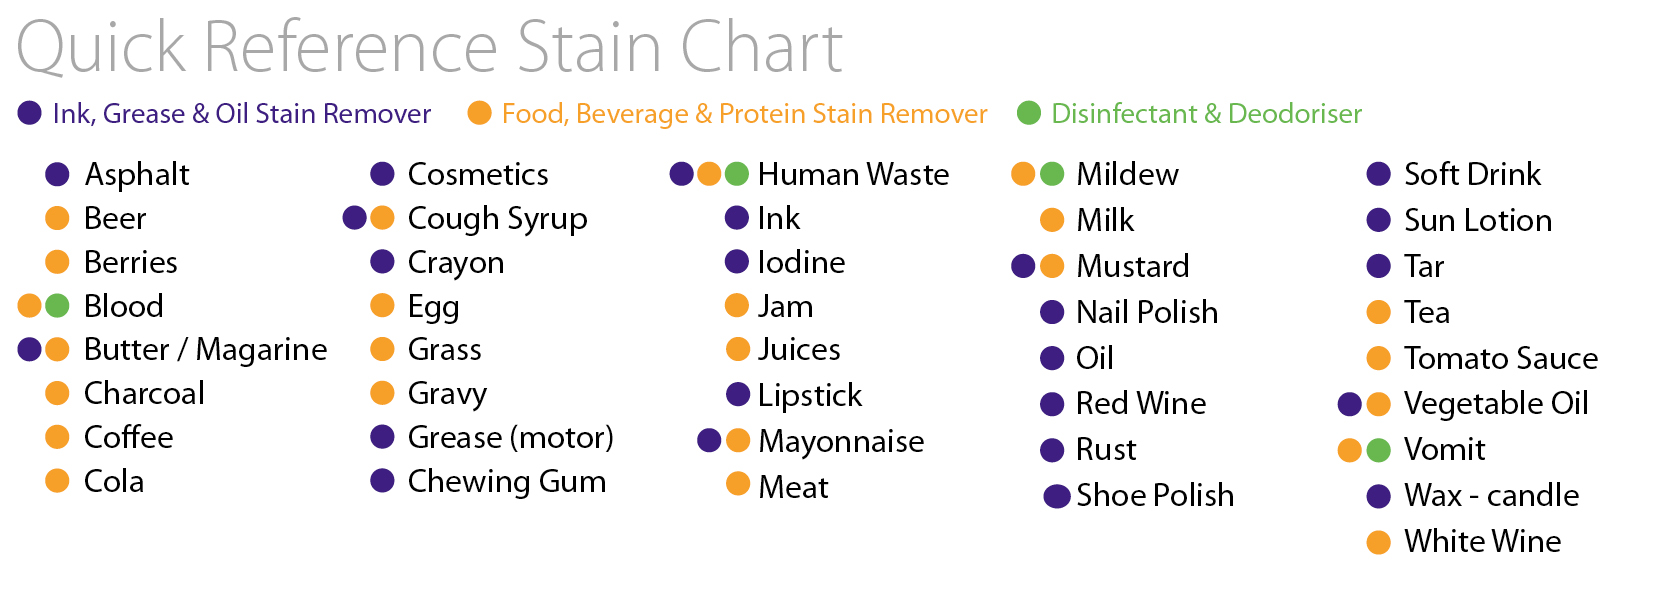 Quick Reference Stain Chart